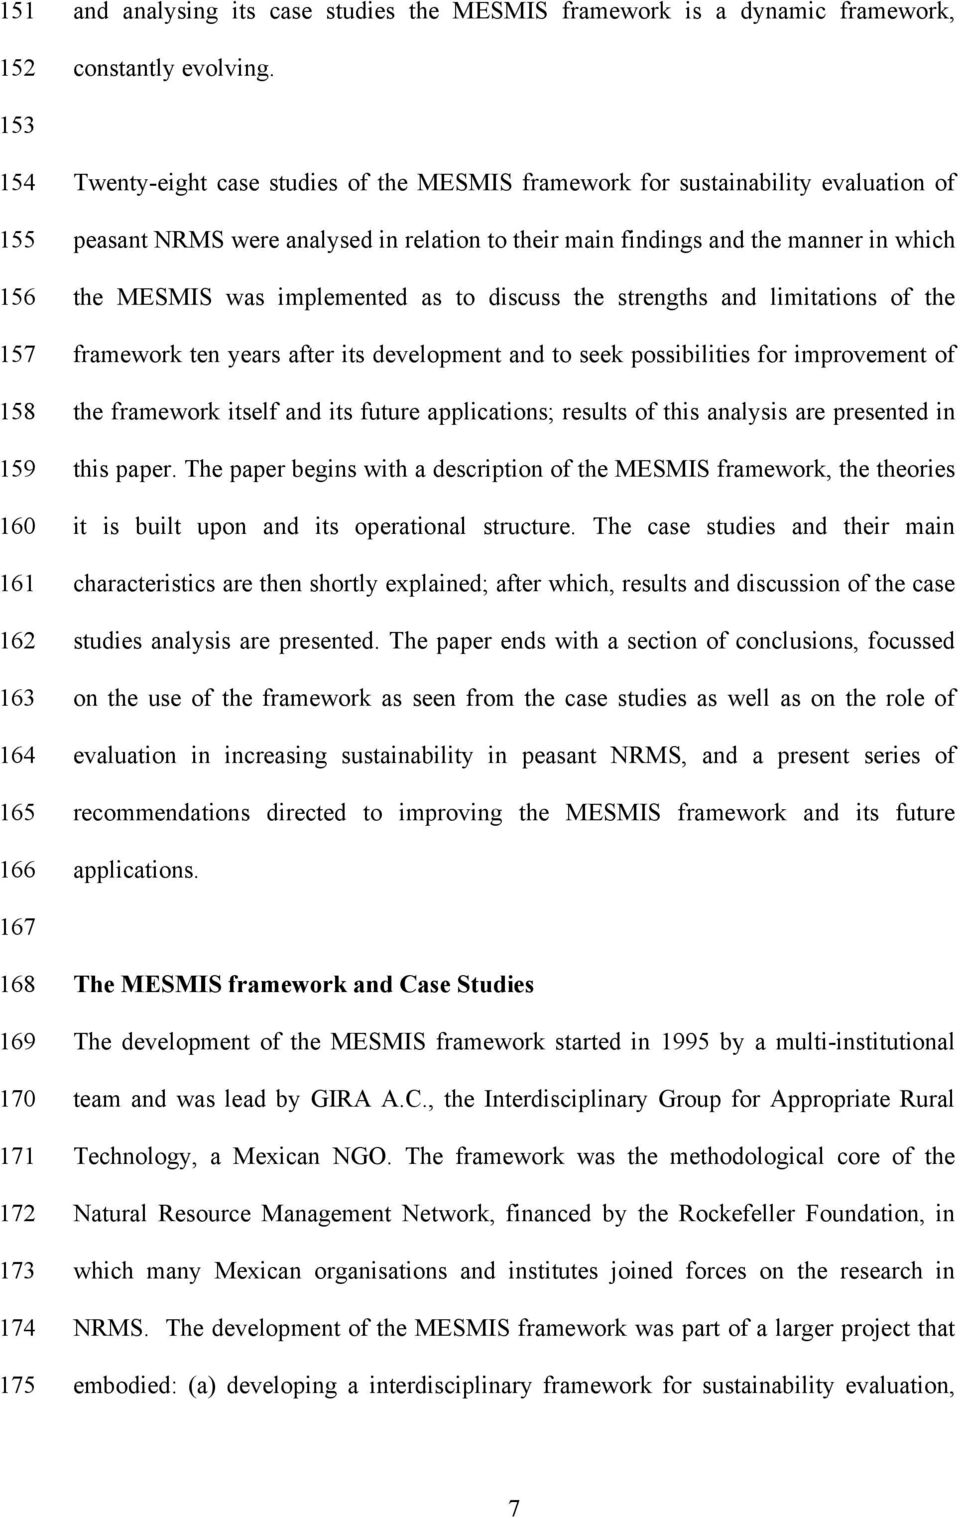 findings and the manner in which the MESMIS was implemented as to discuss the strengths and limitations of the framework ten years after its development and to seek possibilities for improvement of